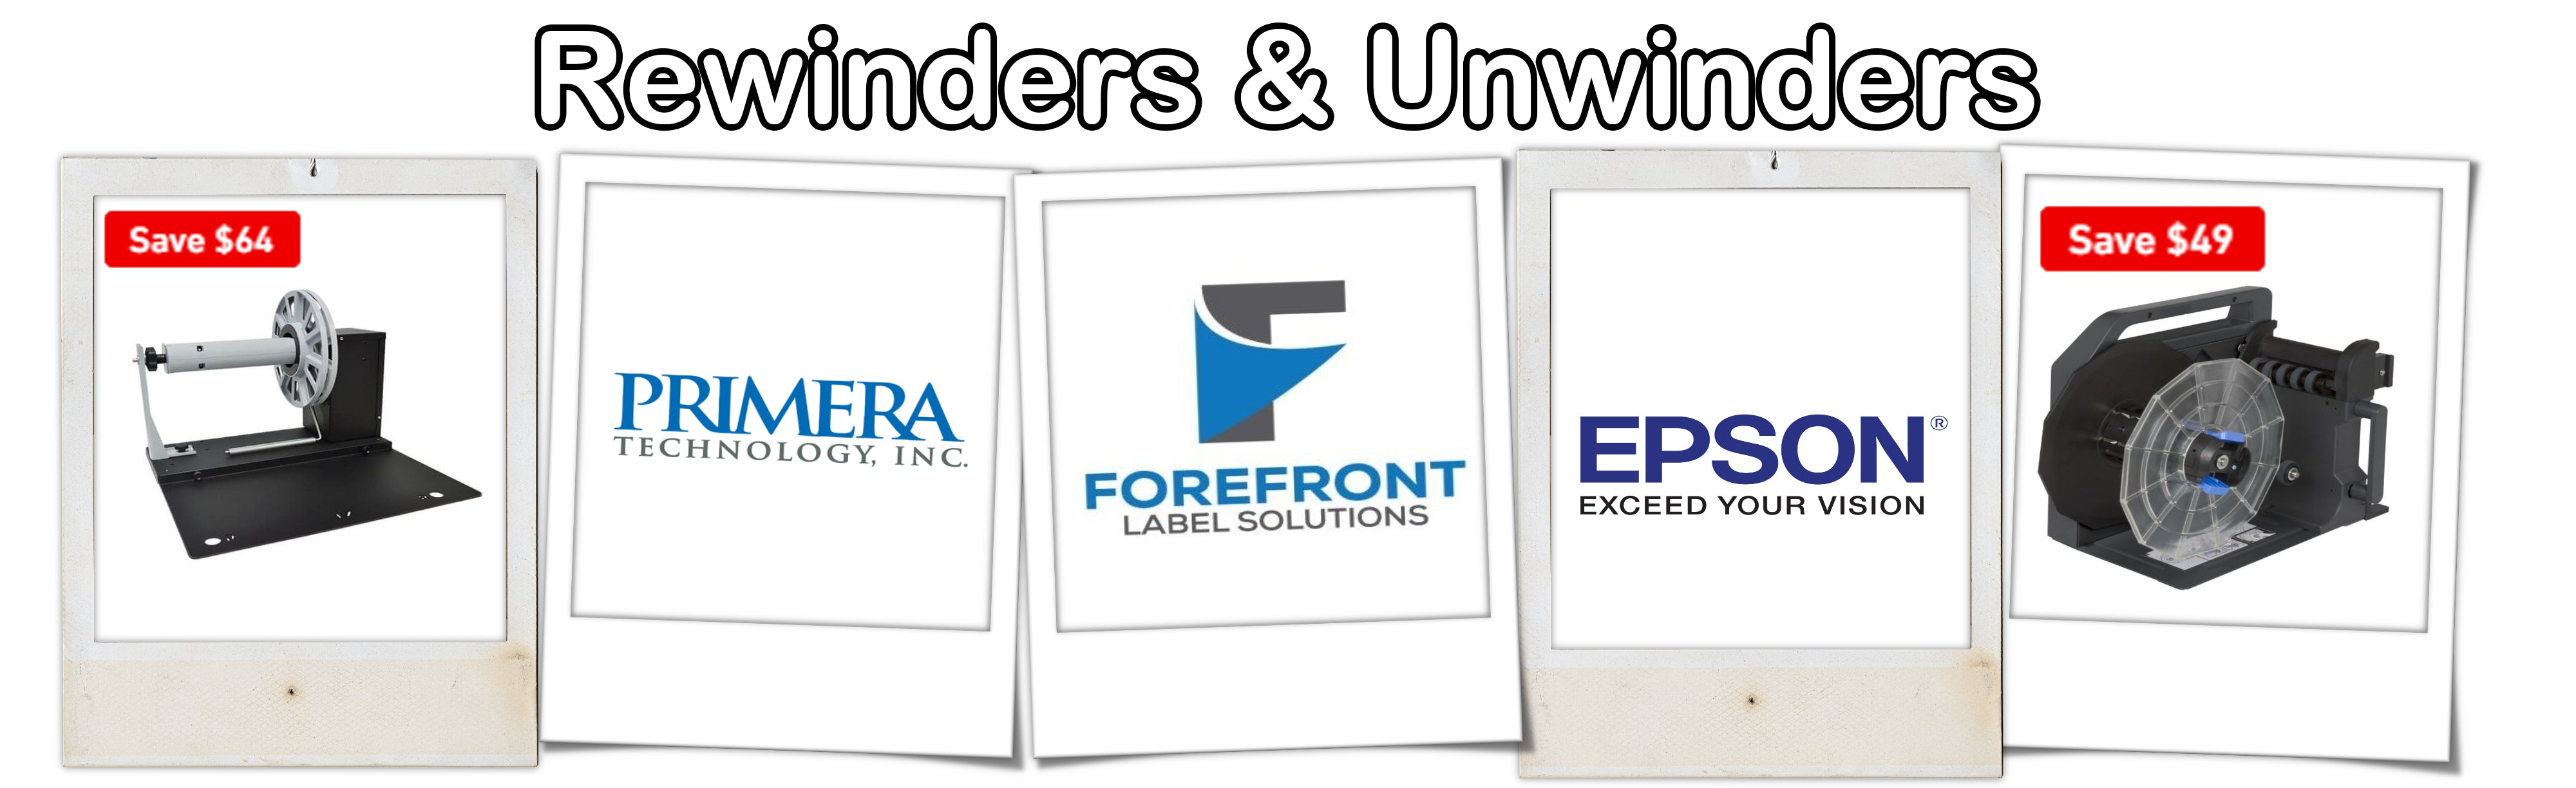 ForeFront Label Solutions - Rewinders & Unwinders